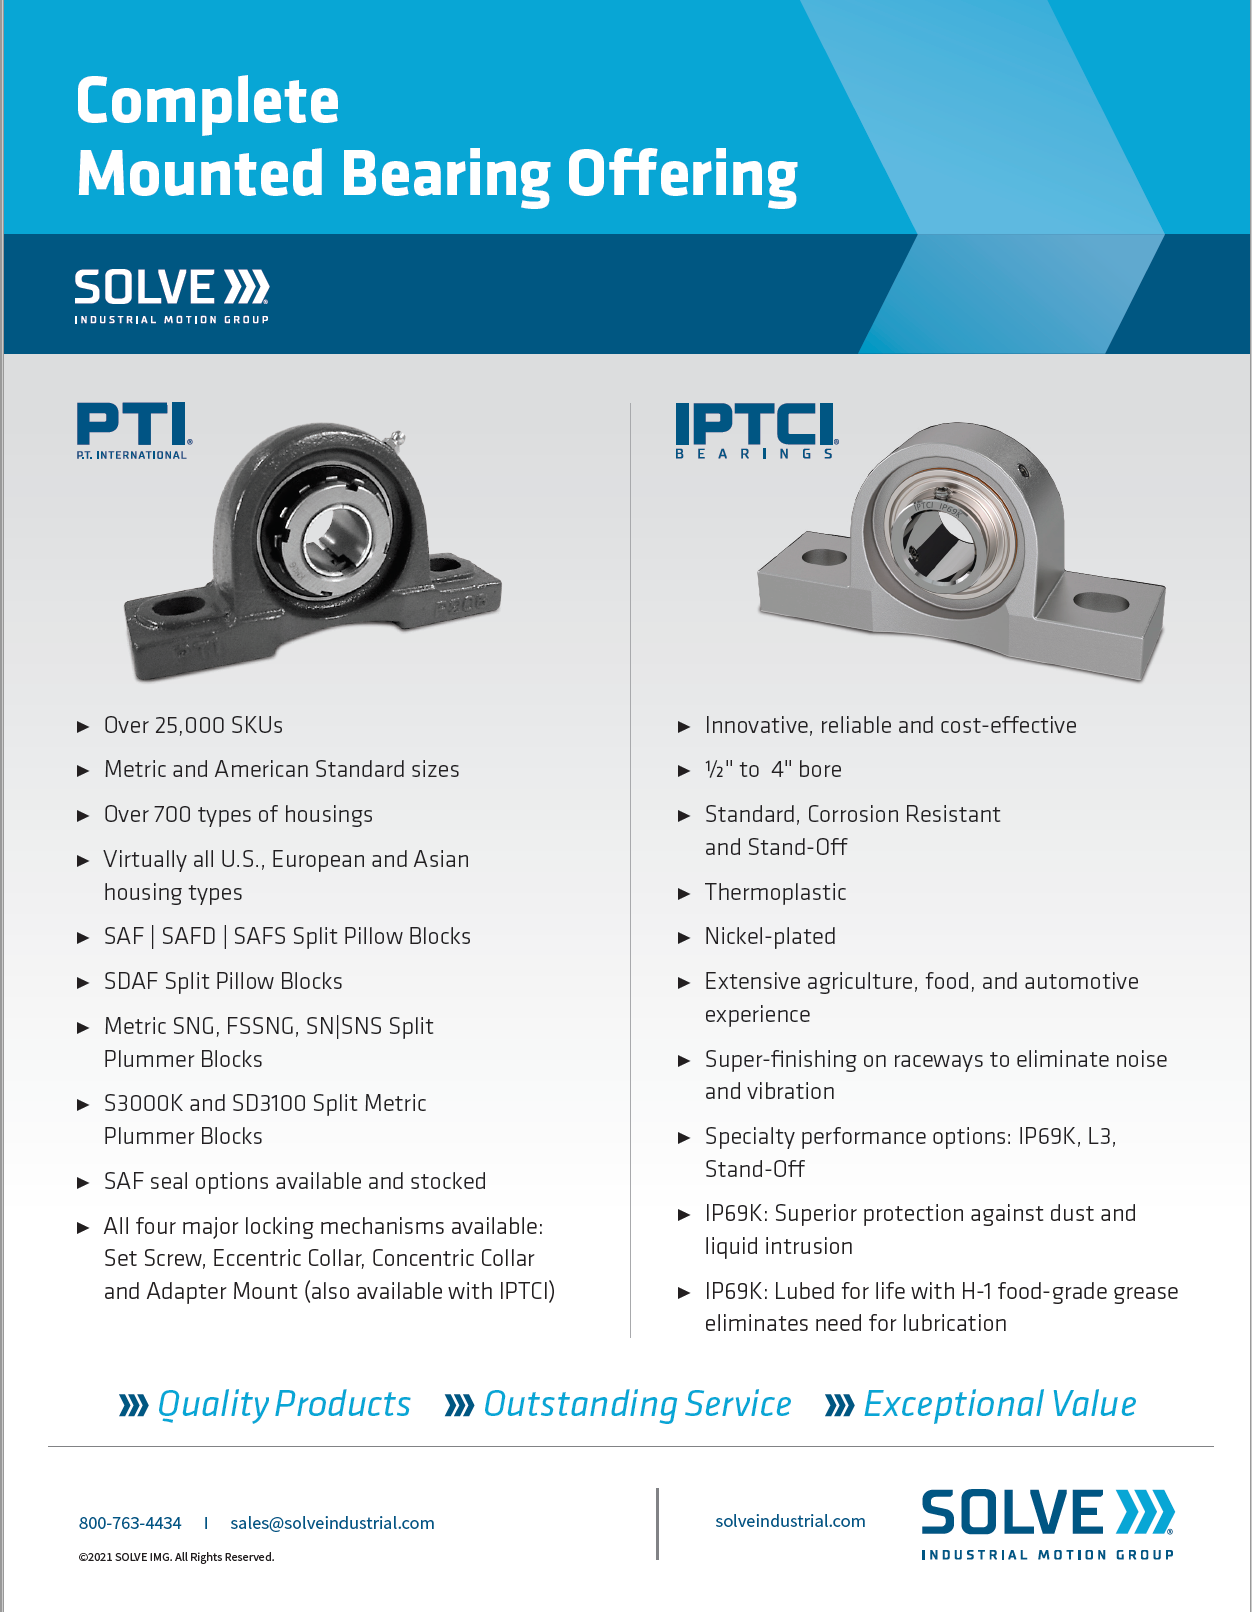 Solve Complete Mounted Bearing Offering brochure